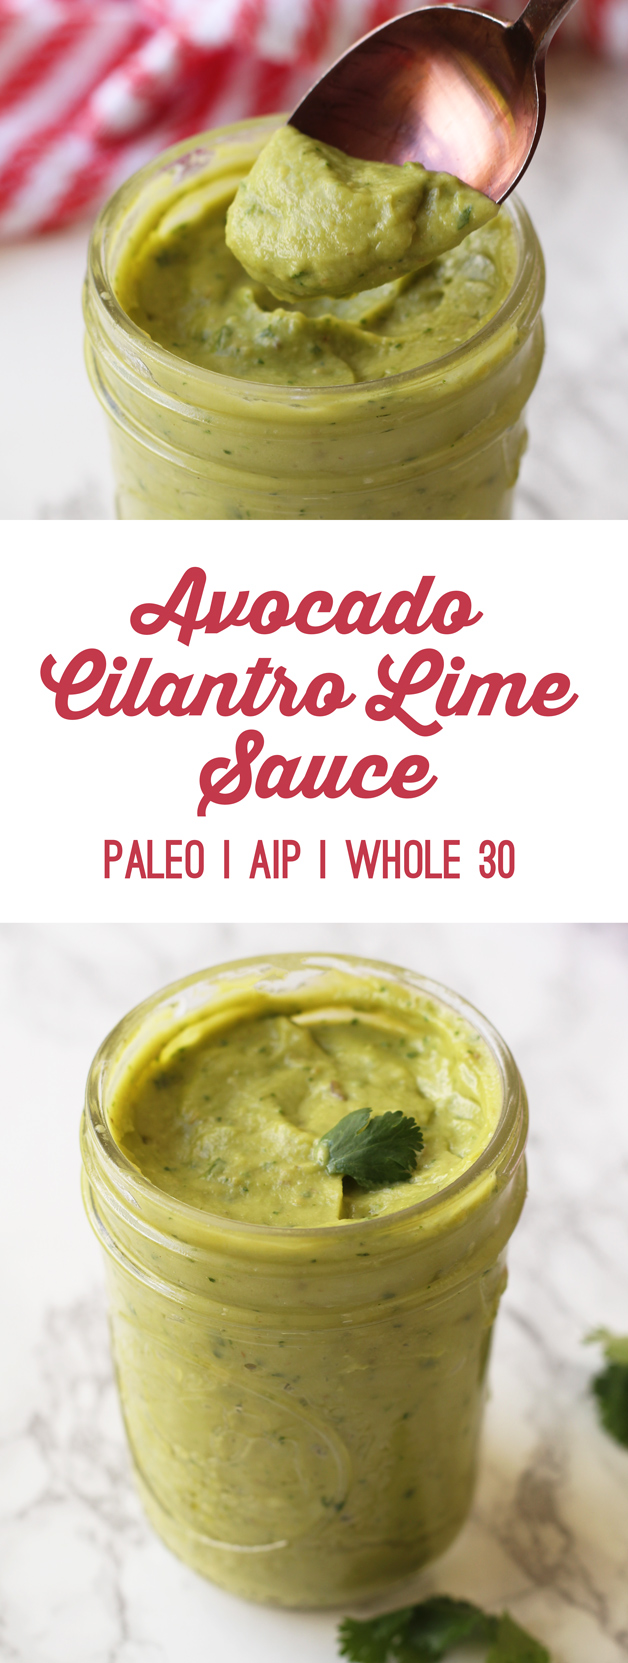 Avocado Cilantro Lime Sauce Recipe (AIP, Paleo, Whole 30)